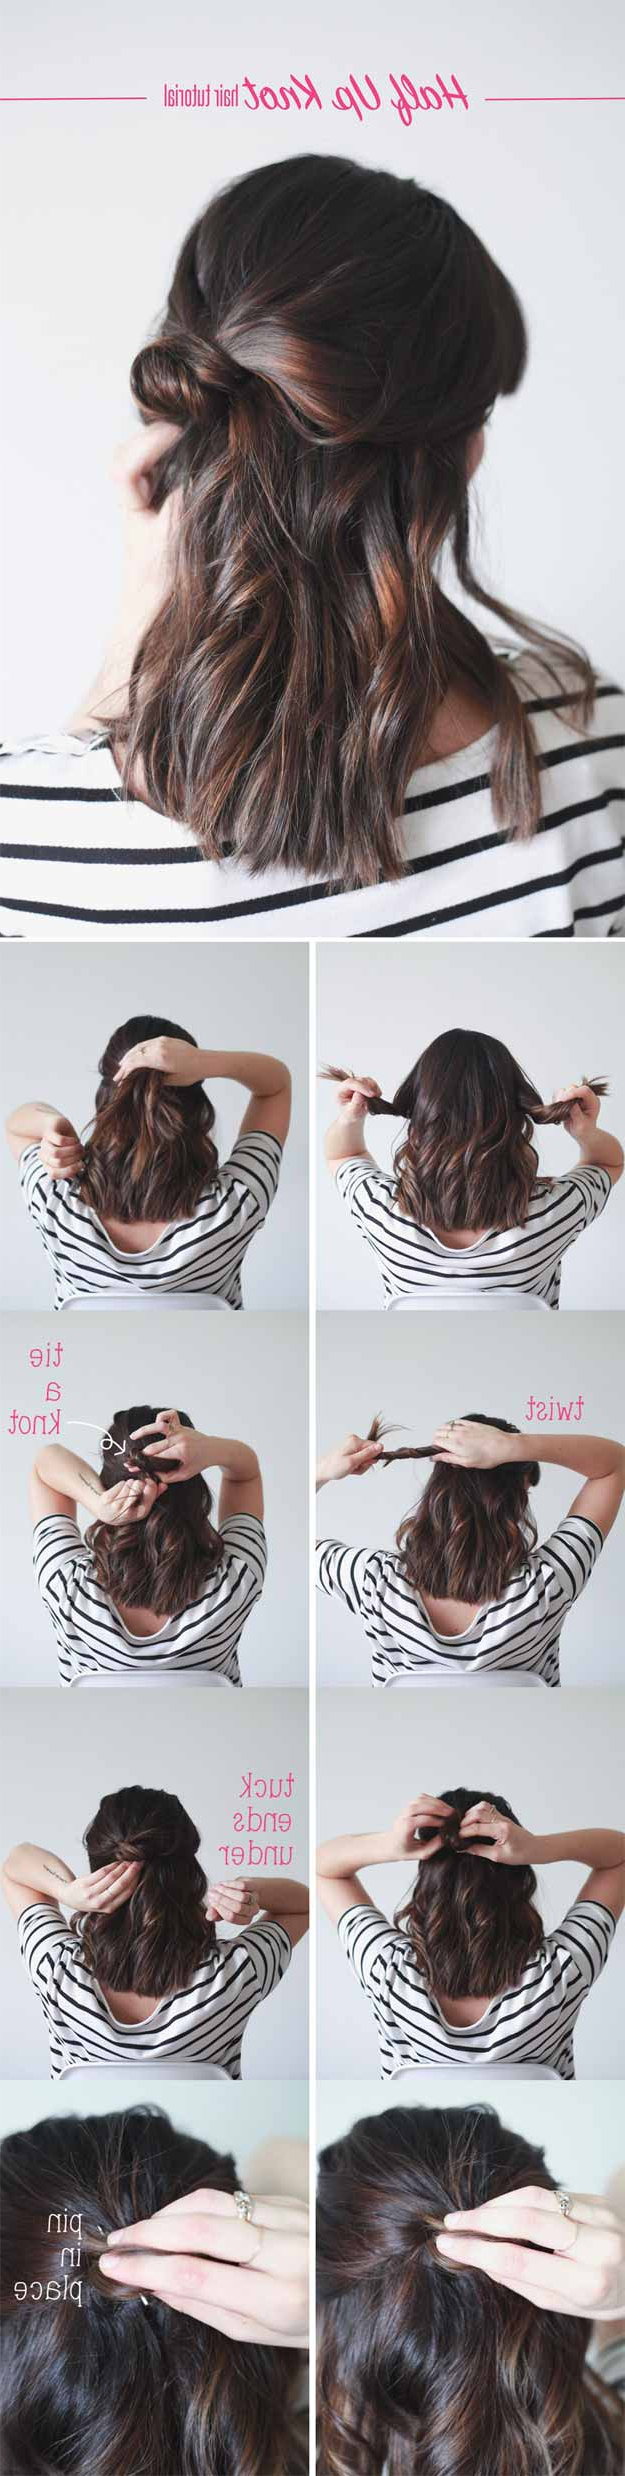 33 Best Hairstyles For Your 20s – The Goddess Intended For Well Known Half Short Half Medium Haircuts (View 15 of 20)